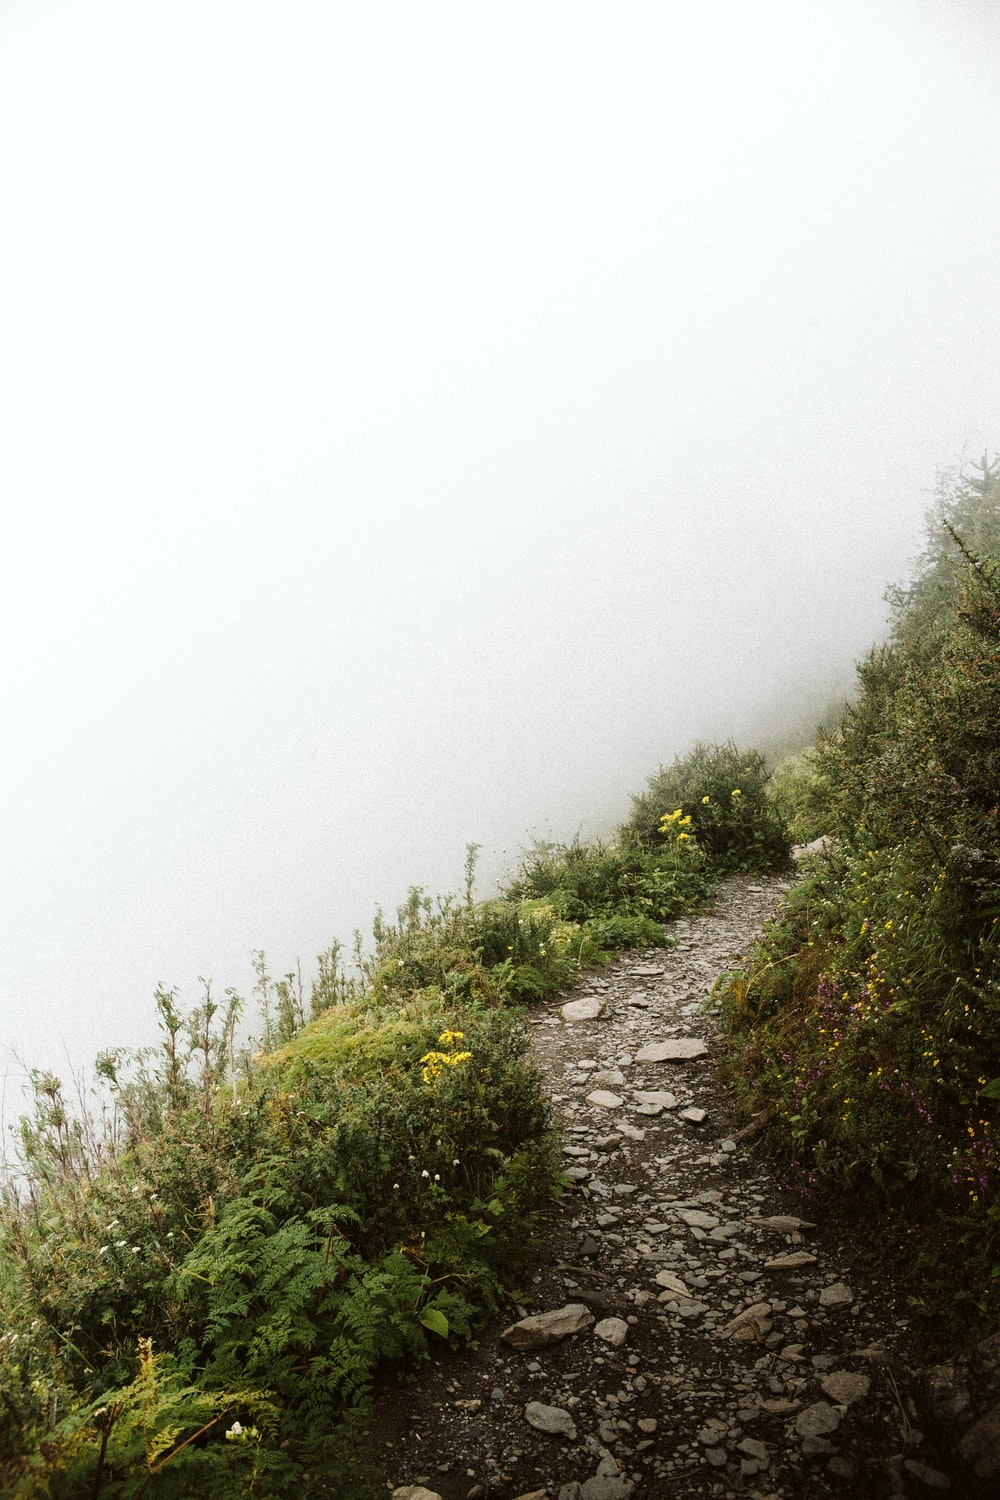 pathway on hill